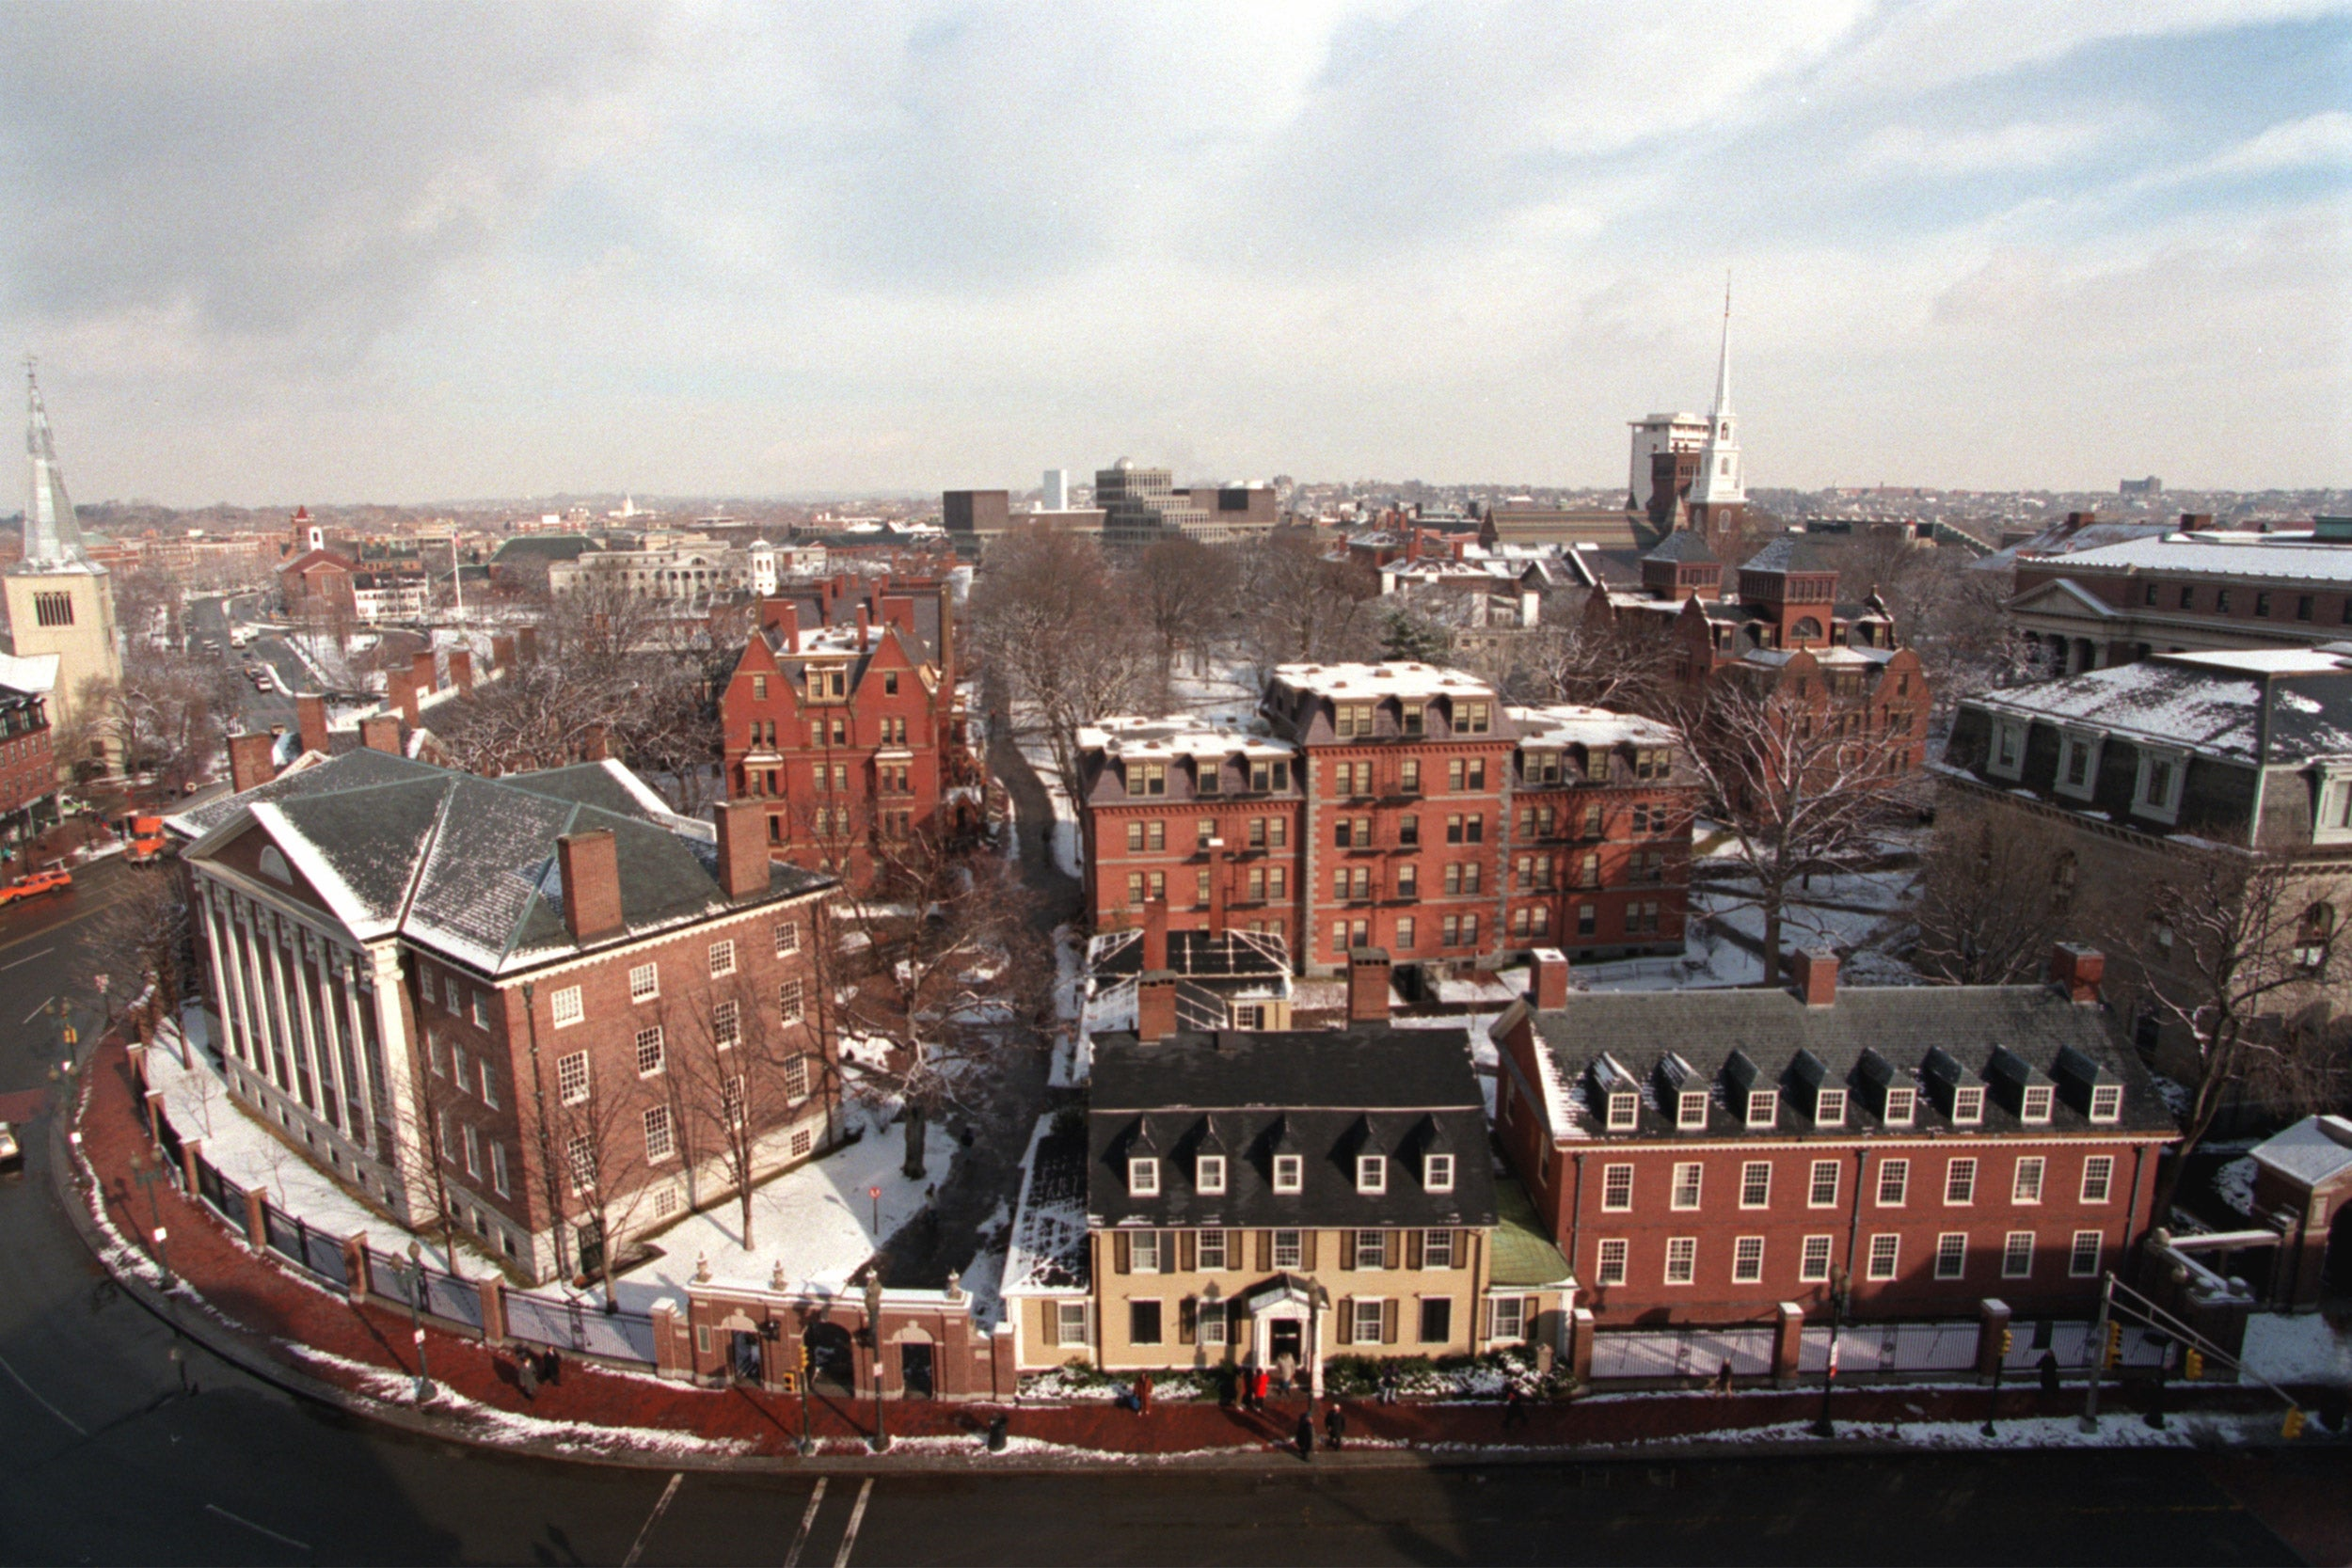 Overview of Harvard Yard with snow